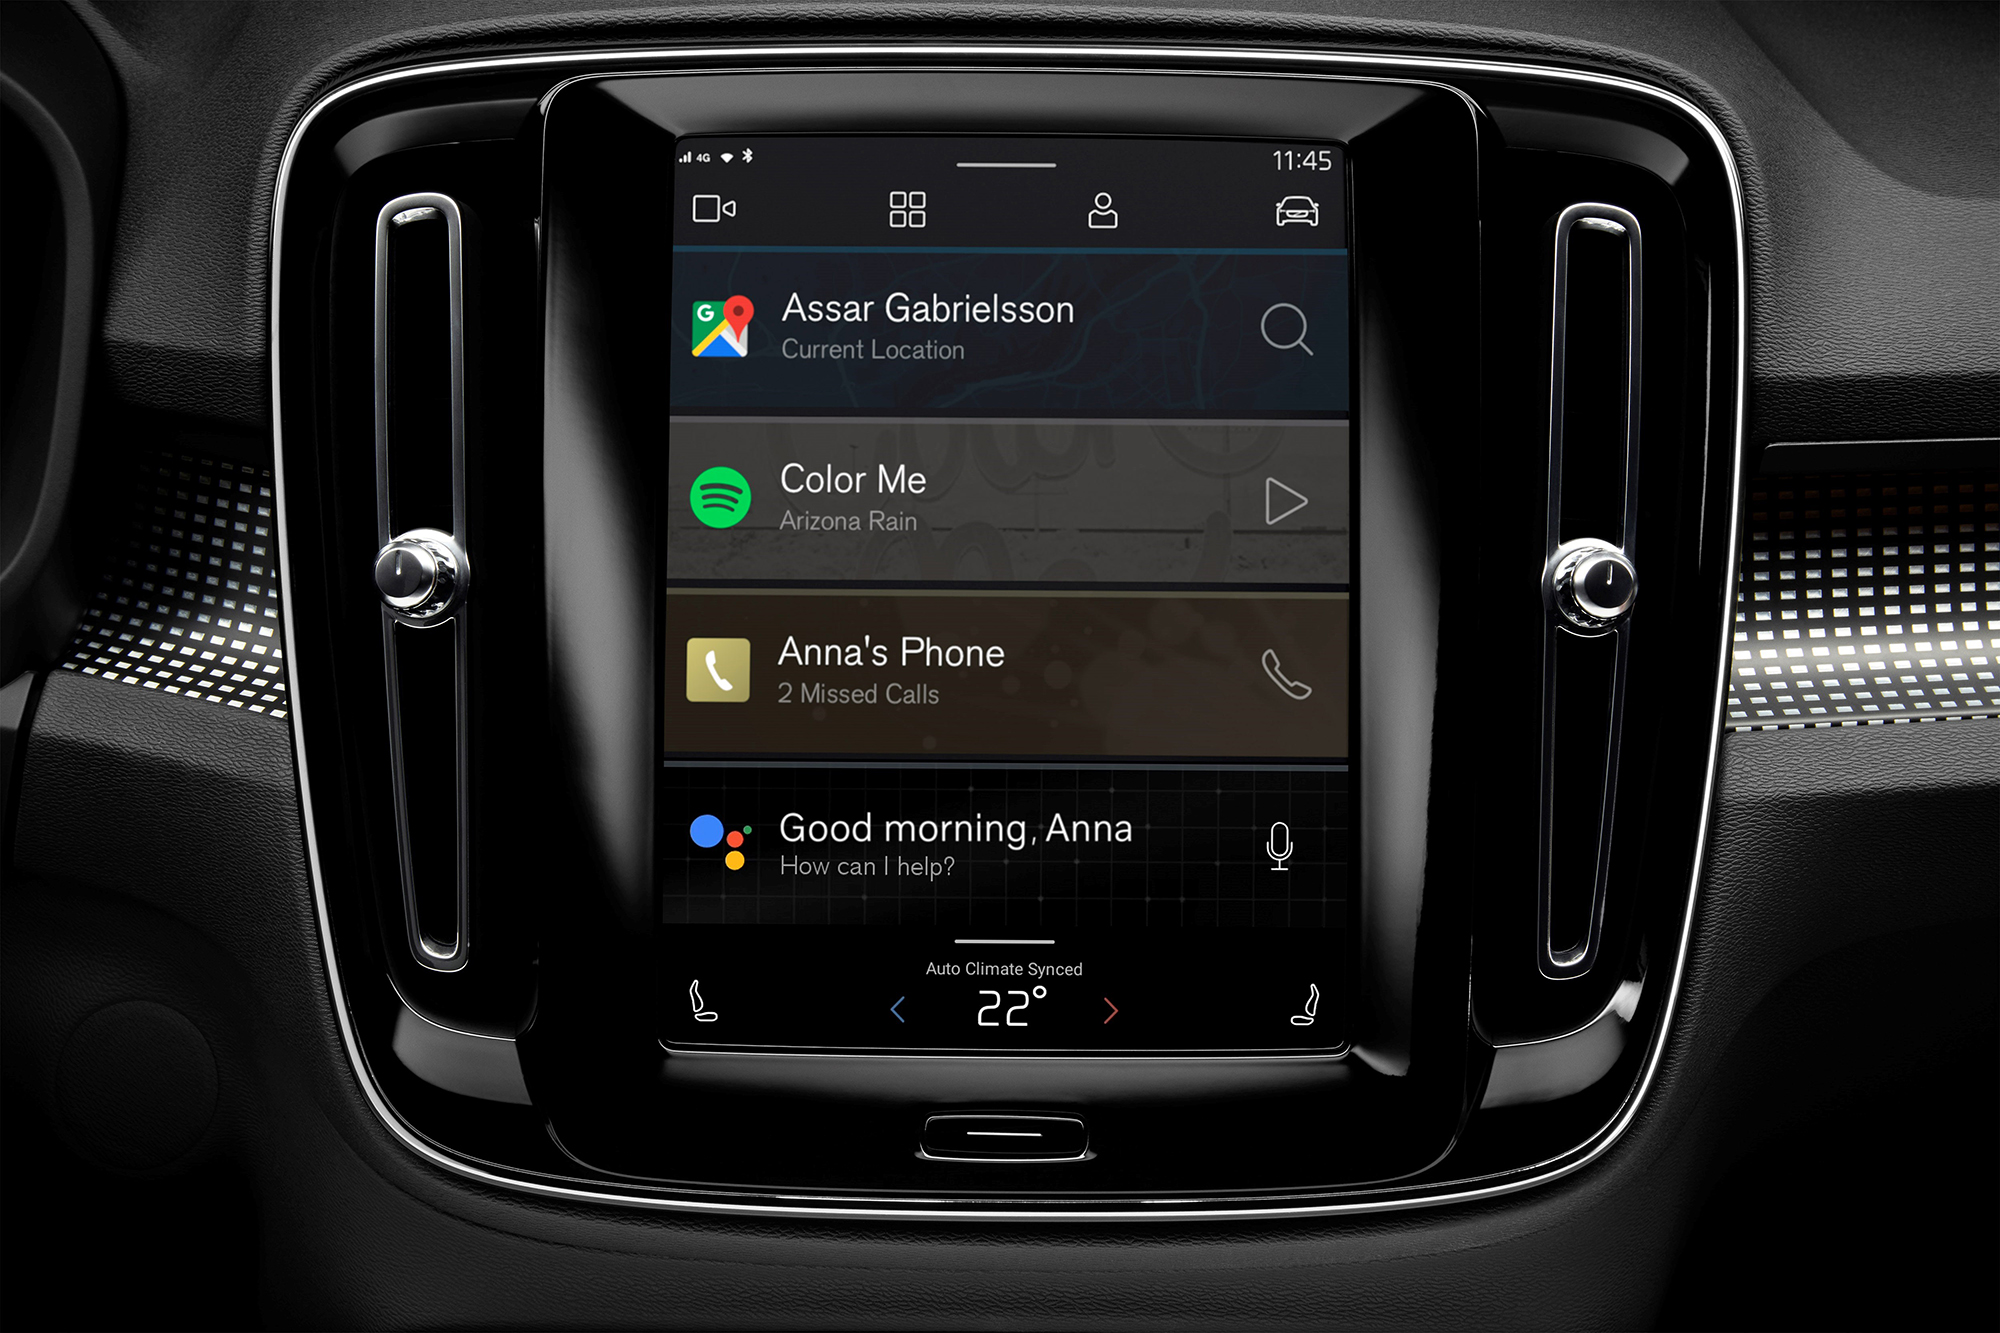 All-Electric Volvo XC40 Gets New Android-Powered Infotainment System